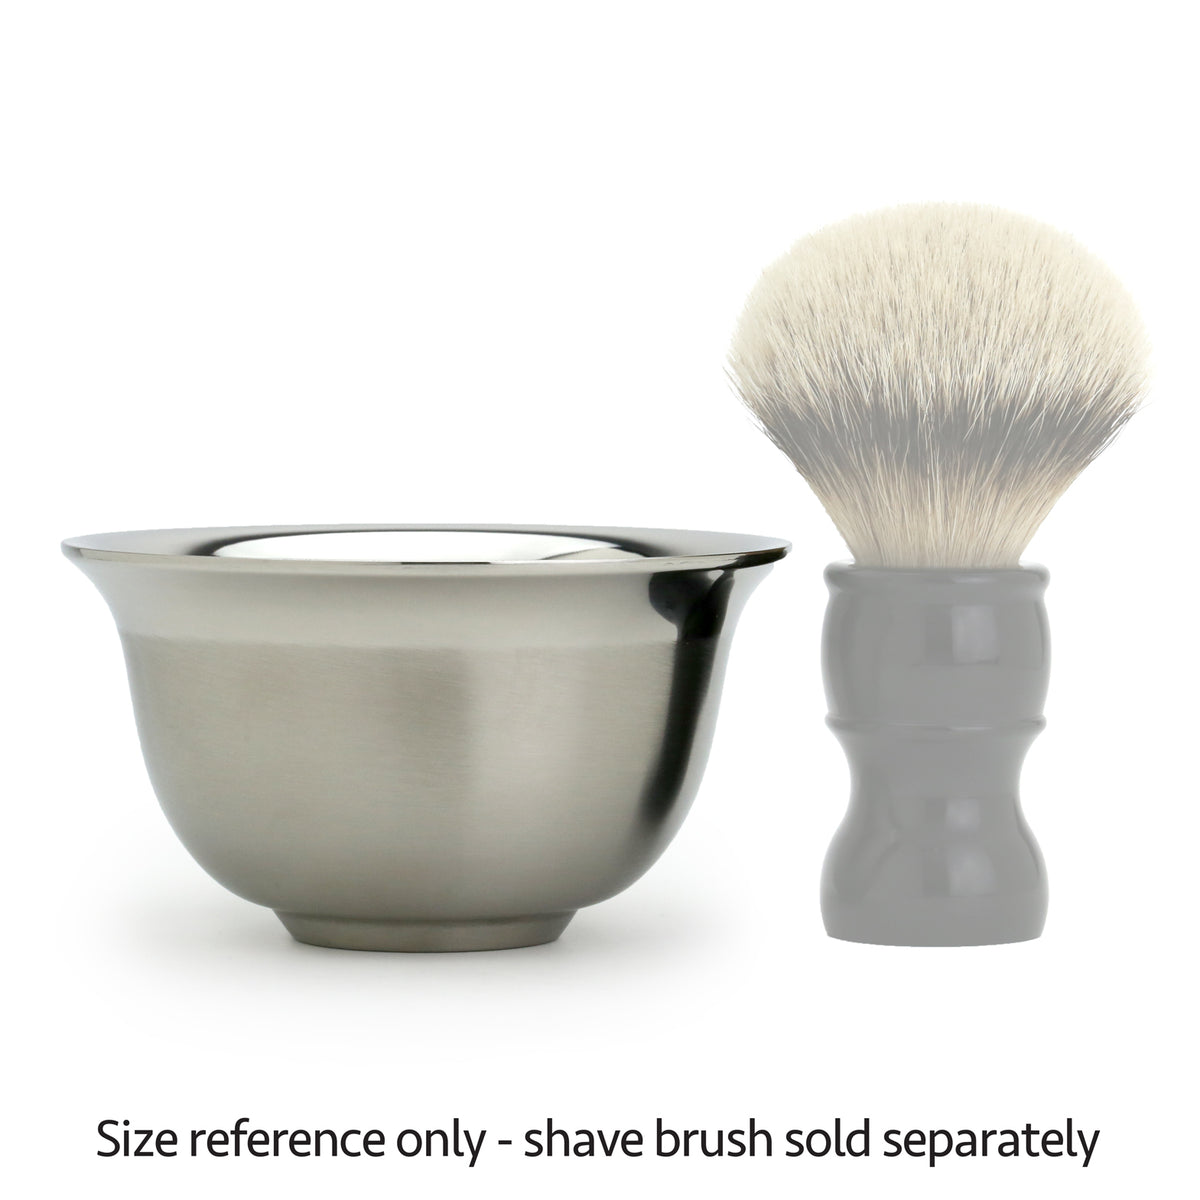 Lather Bowl High Quality 304 Stainless Steel